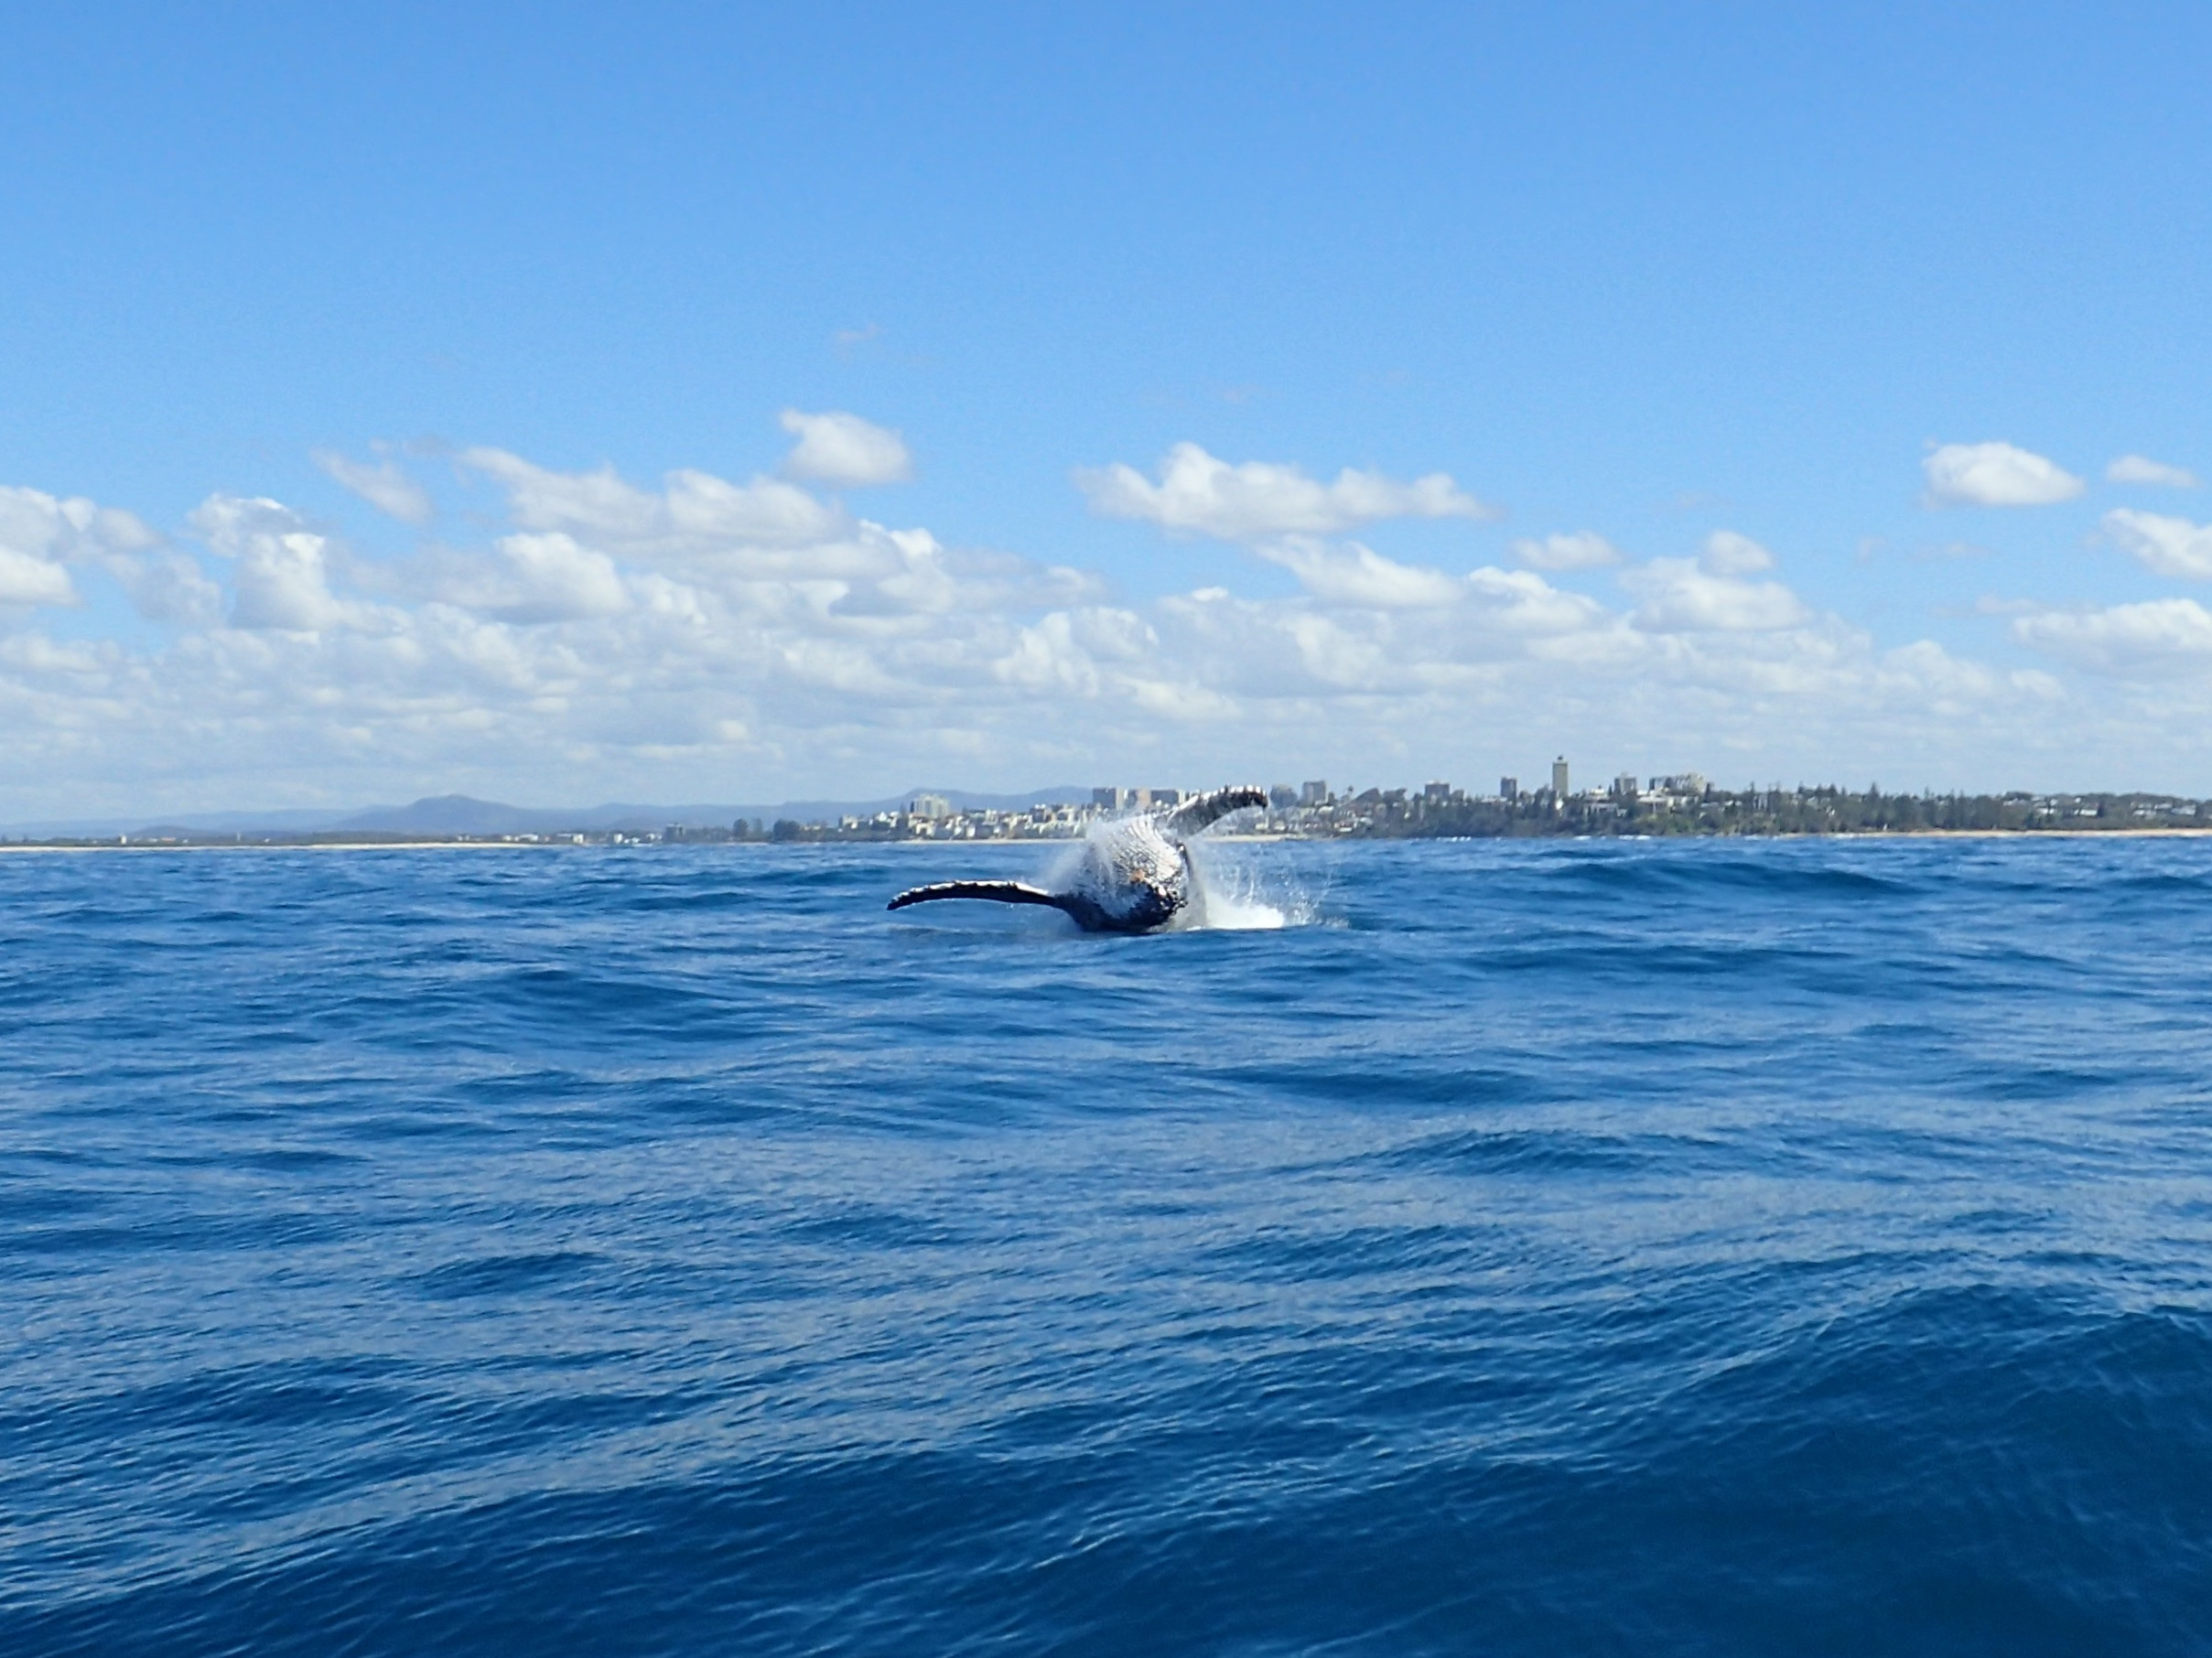 https://assets.boxdice.com.au/screpartners/attachments/859/750/real_estate_caloundra_whale.jpg?df94ad3c4bbab0e9090e7fb075680fa0